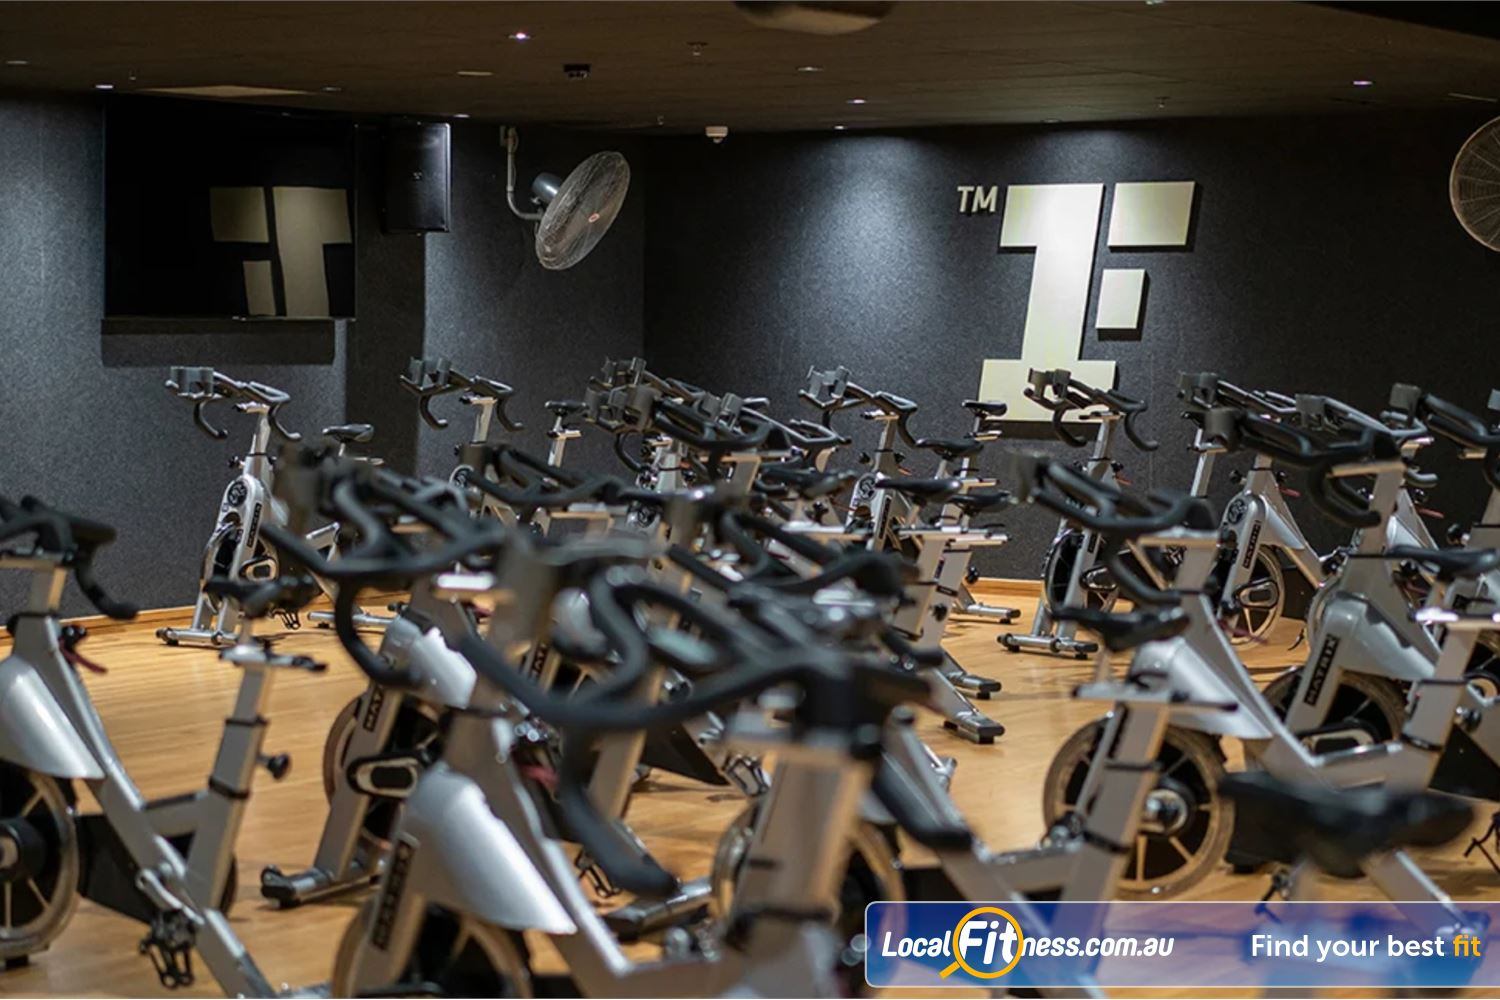 Fitness First Platinum George St. Sydney Dedicated indoor Sydney spin cycle studio with state of the art bikes.